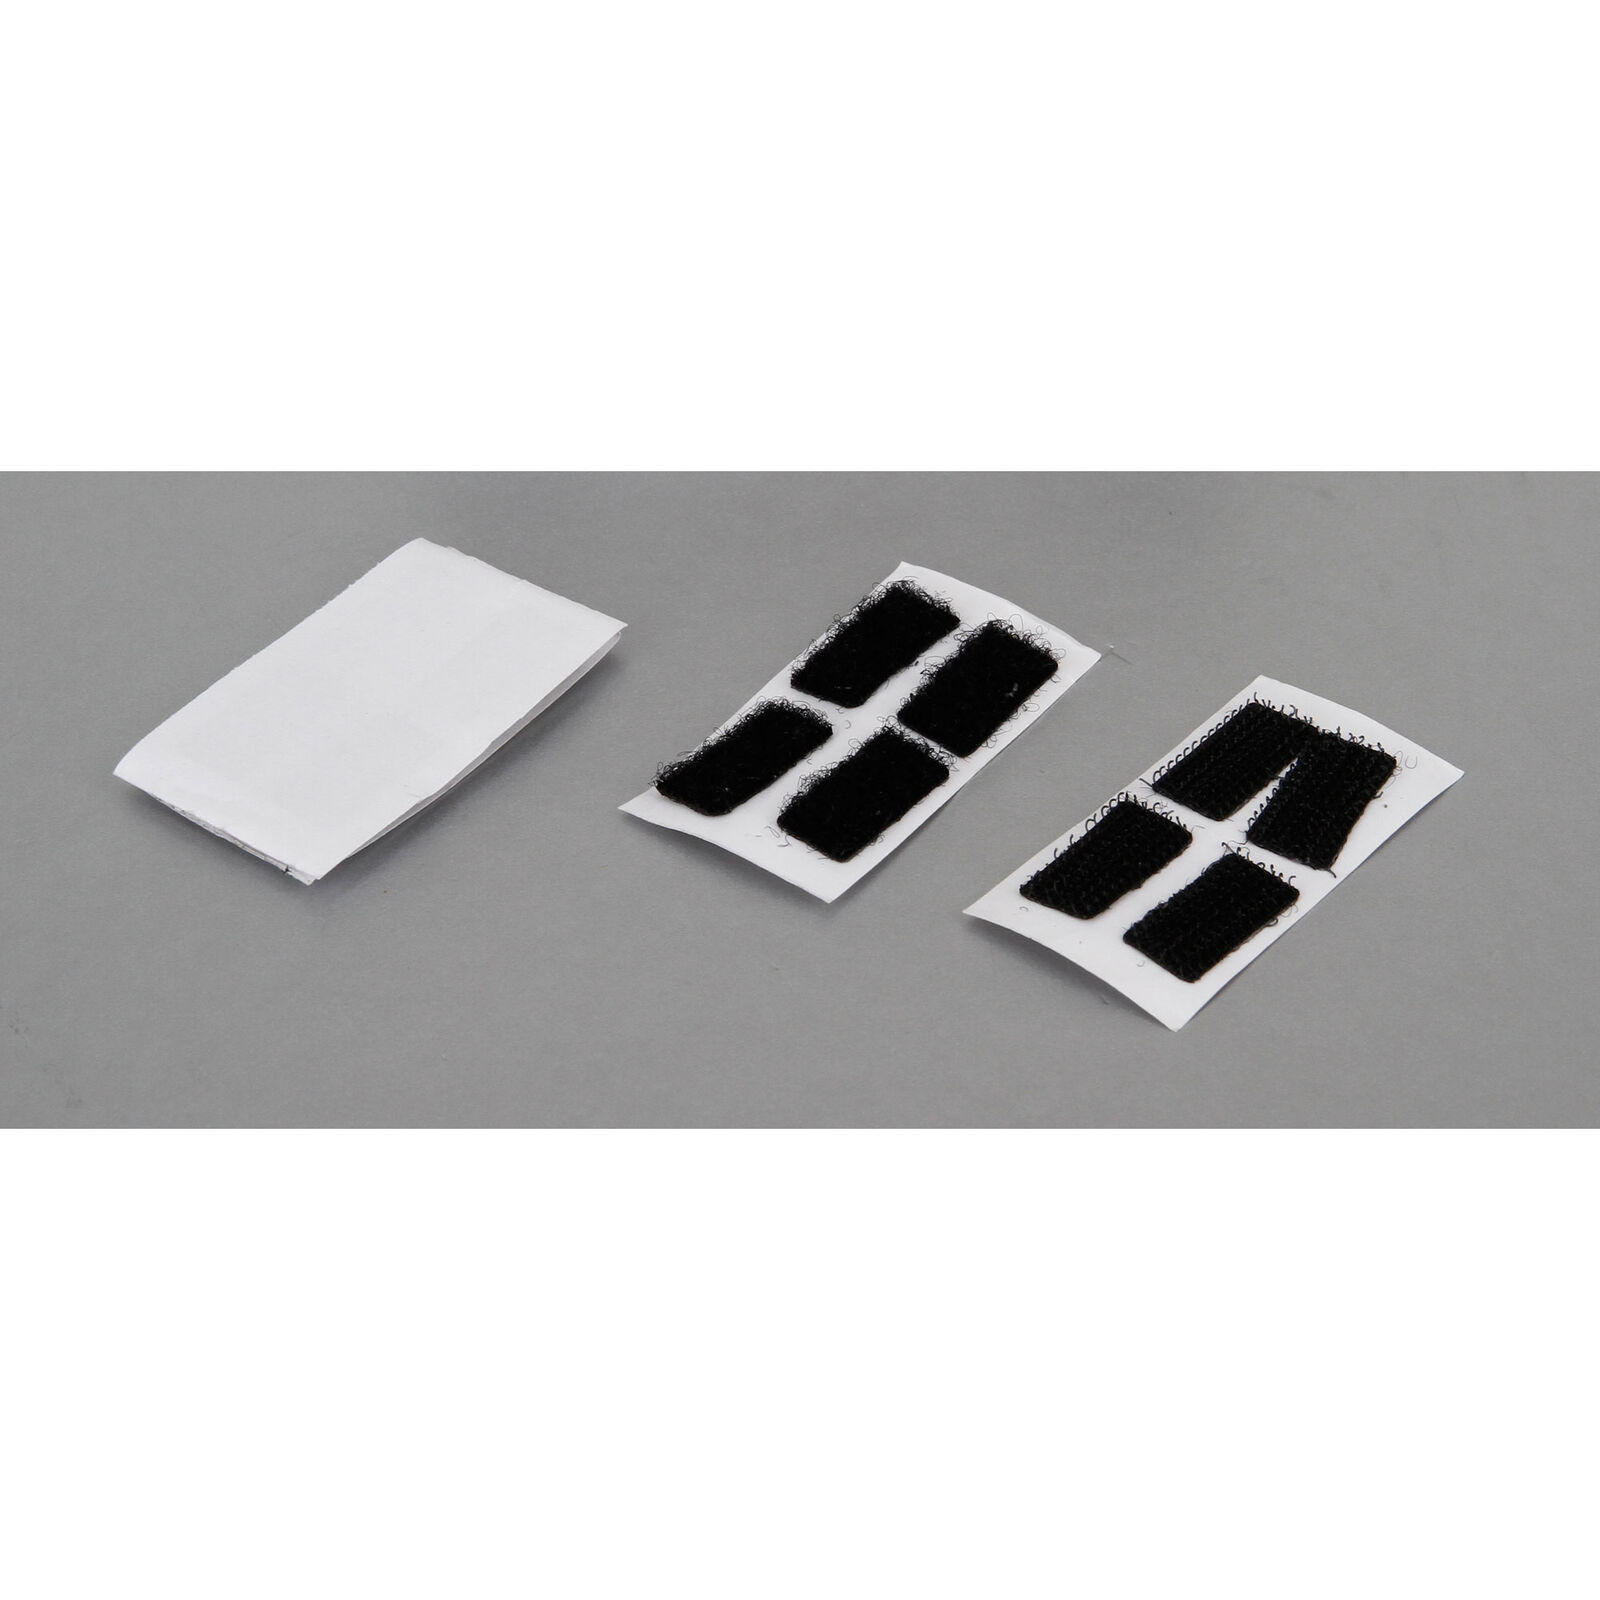 Hook and Loop Body Mounting, 10 x 20mm: (8)